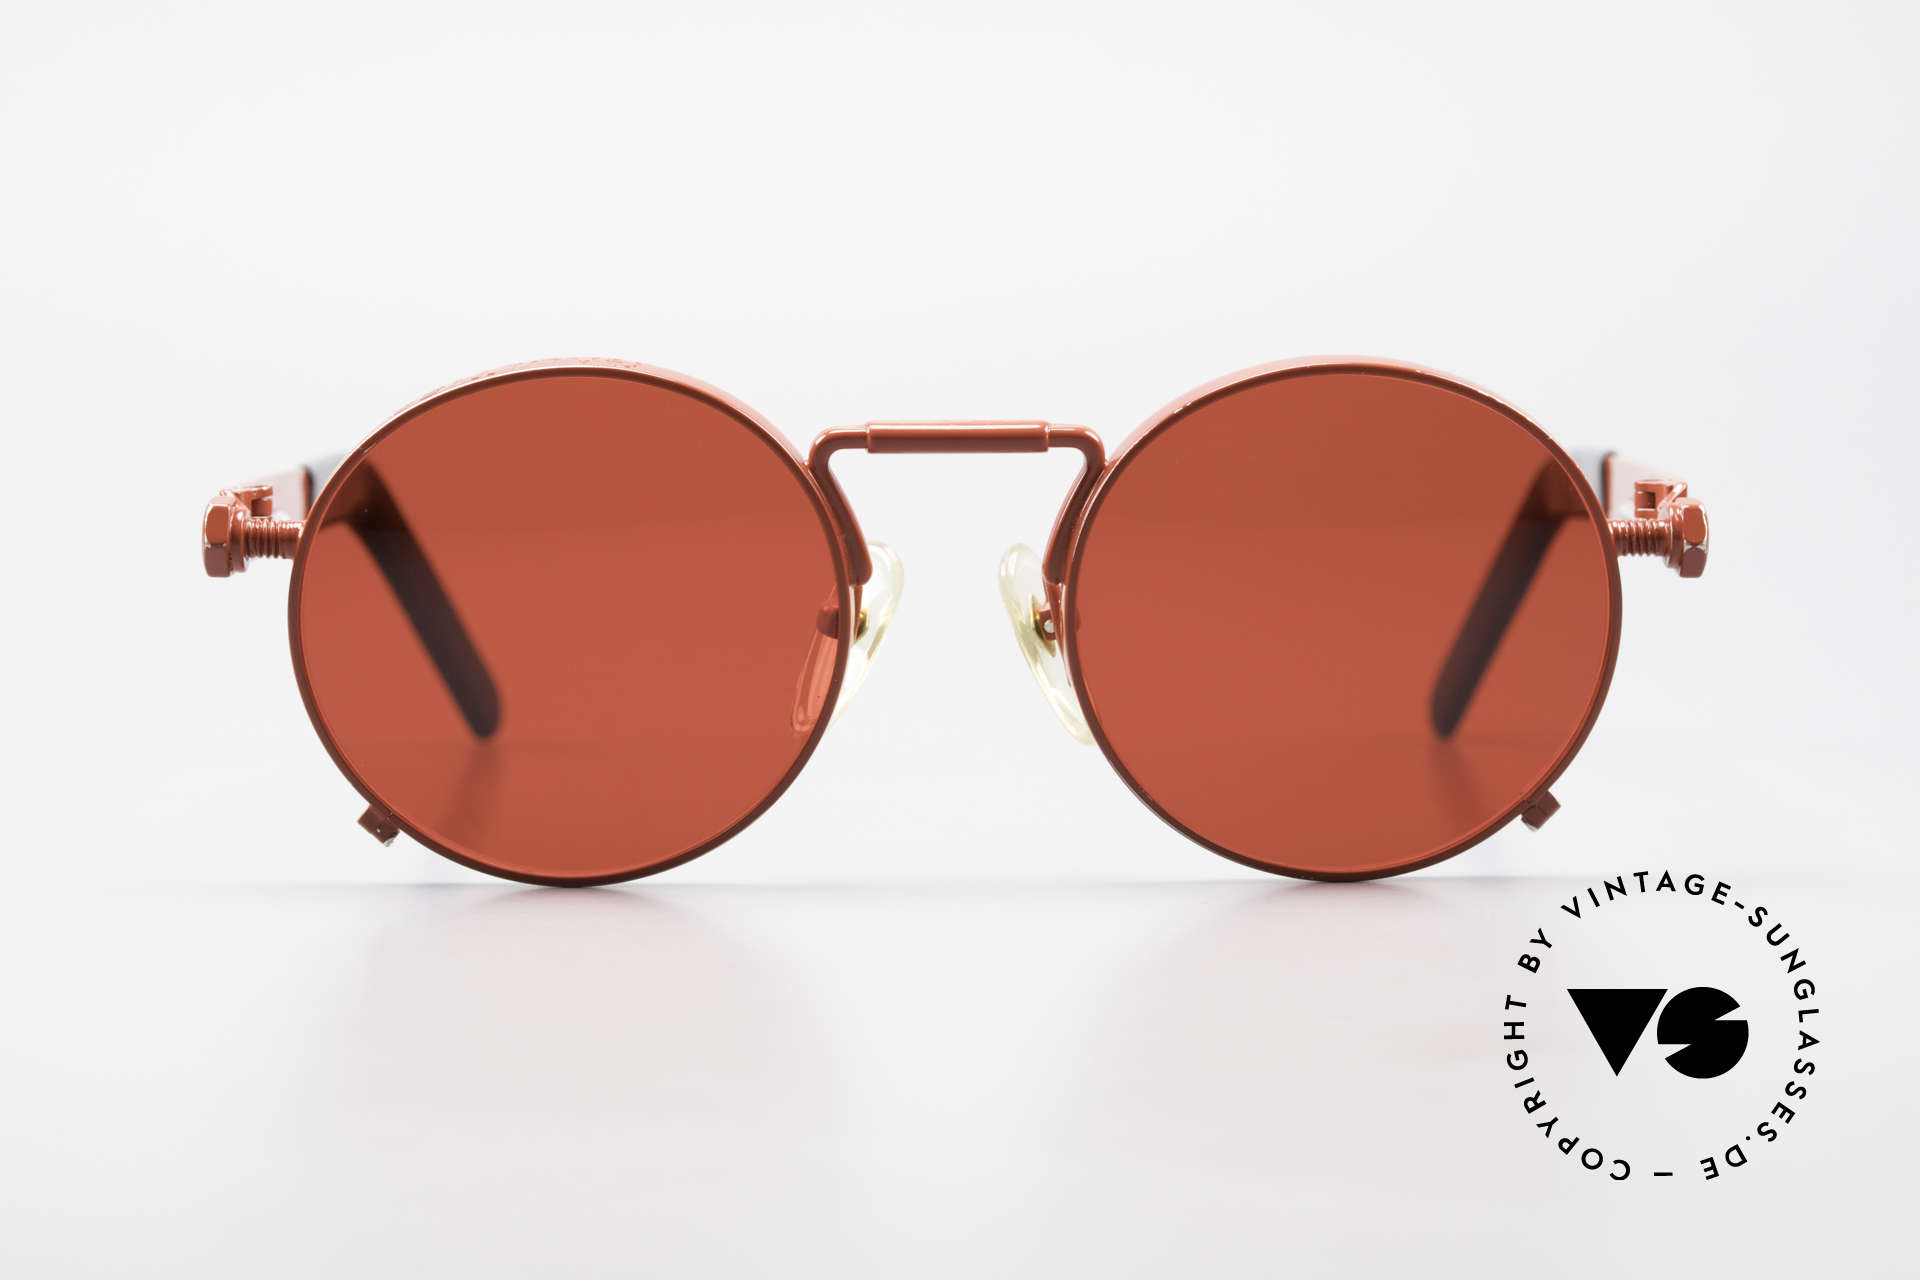 Jean Paul Gaultier 56-8171 Customized Red Edition, 1st model of the Gaultier eyewear collection from 1991, Made for Men and Women